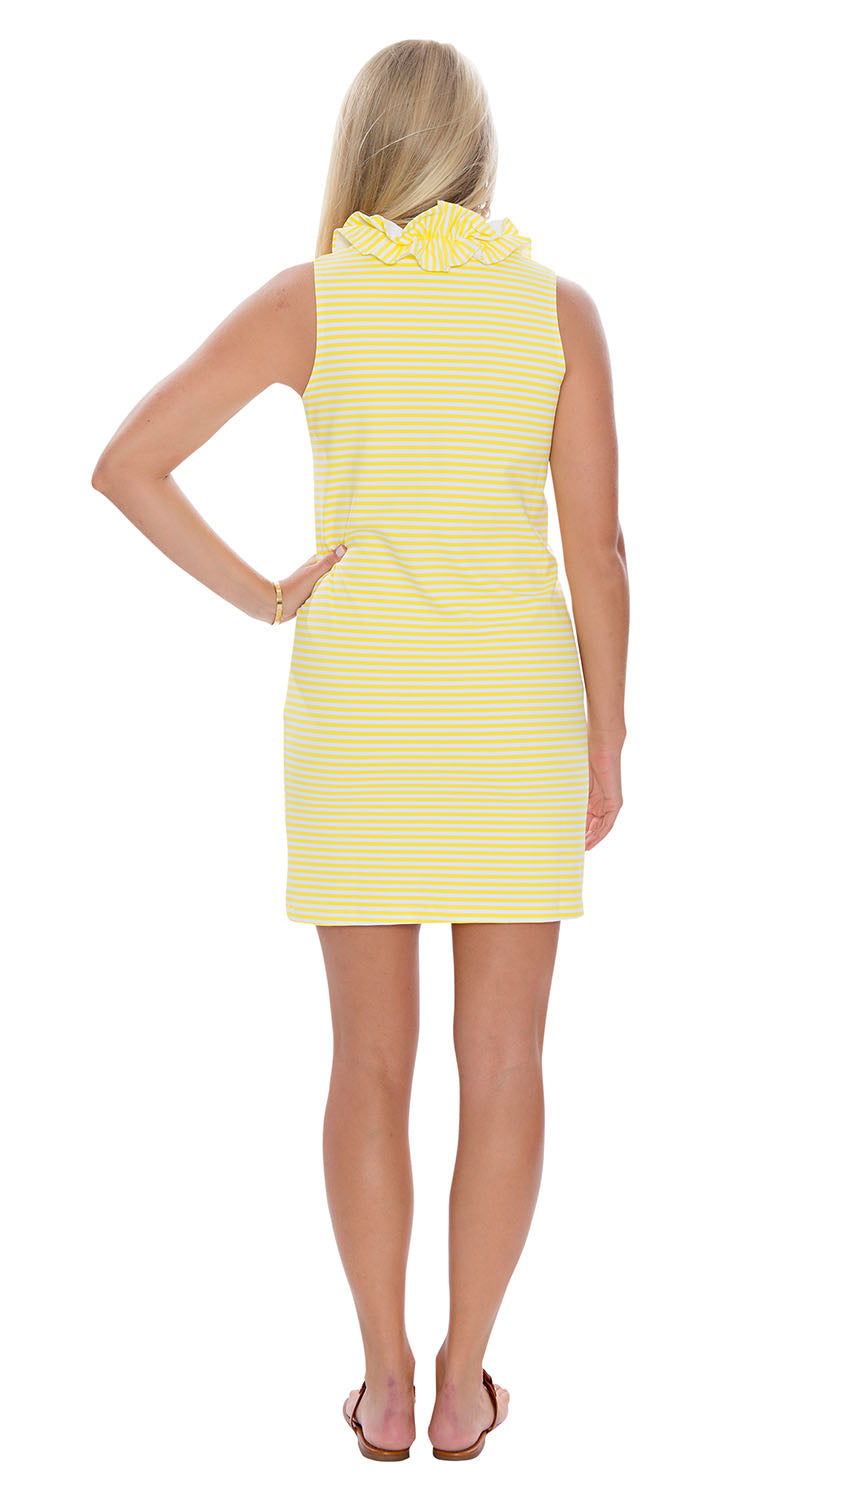 Skipper Dress - Yellow/White Stripes